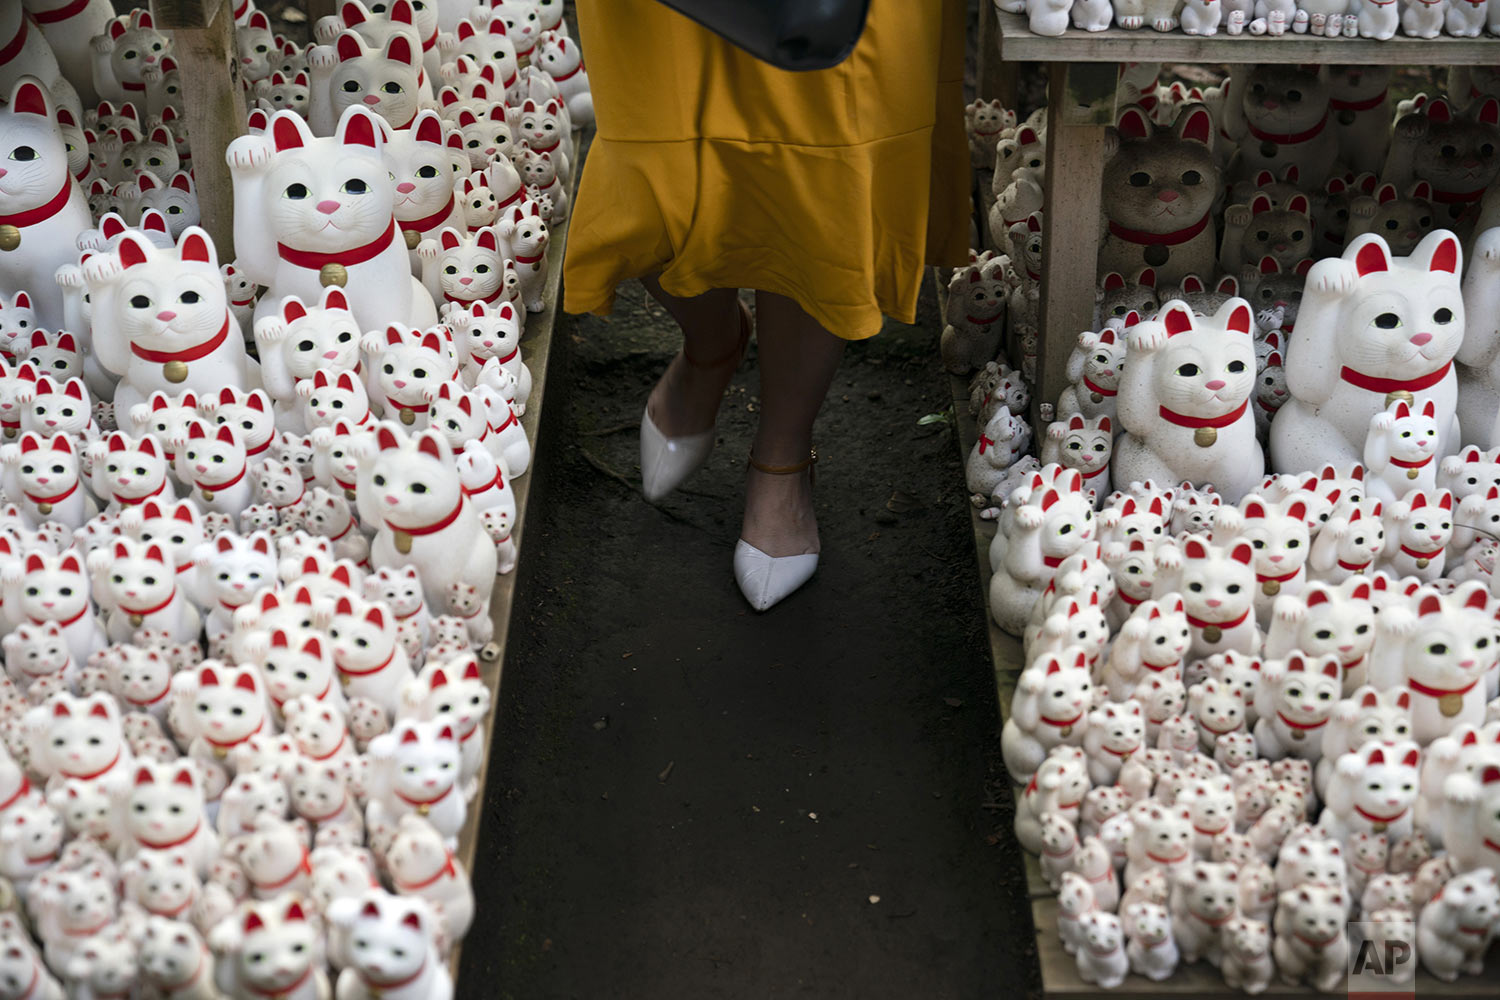 A tourist walk between beckoning cat figurines after posing for photos with them at Gotokuji Temple in Tokyo, Tuesday, June 25, 2019. (AP Photo/Jae C. Hong)